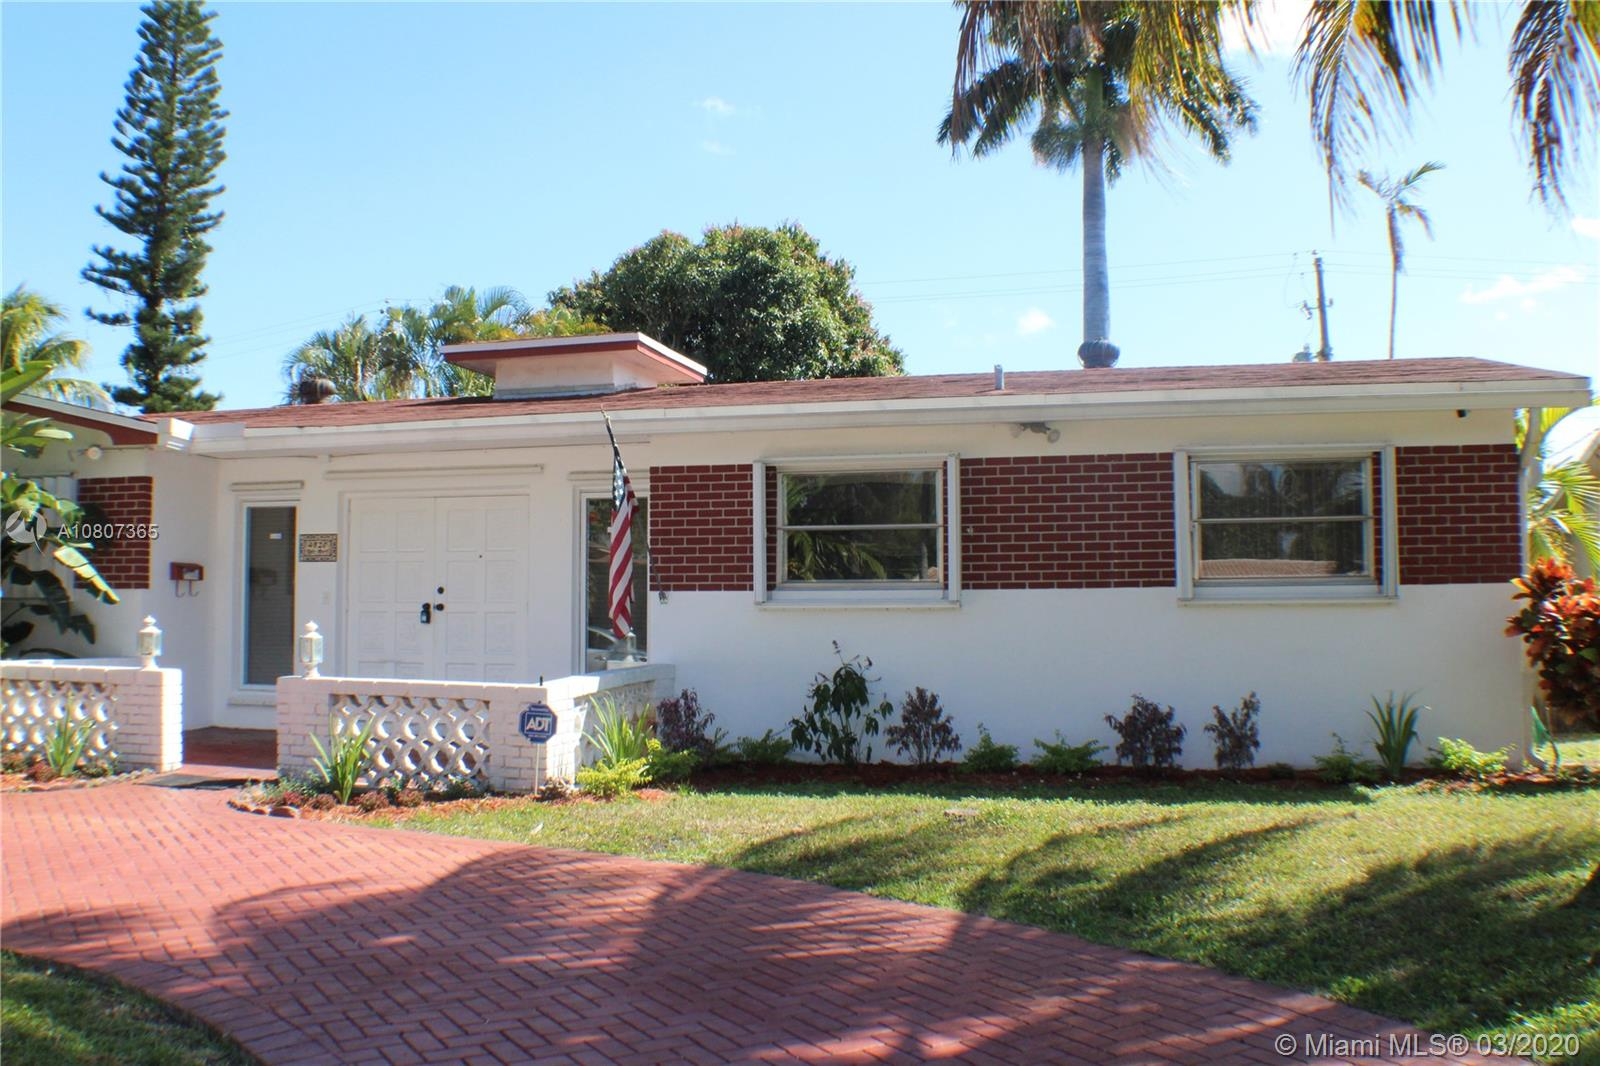 4820  Tyler St  For Sale A10807365, FL